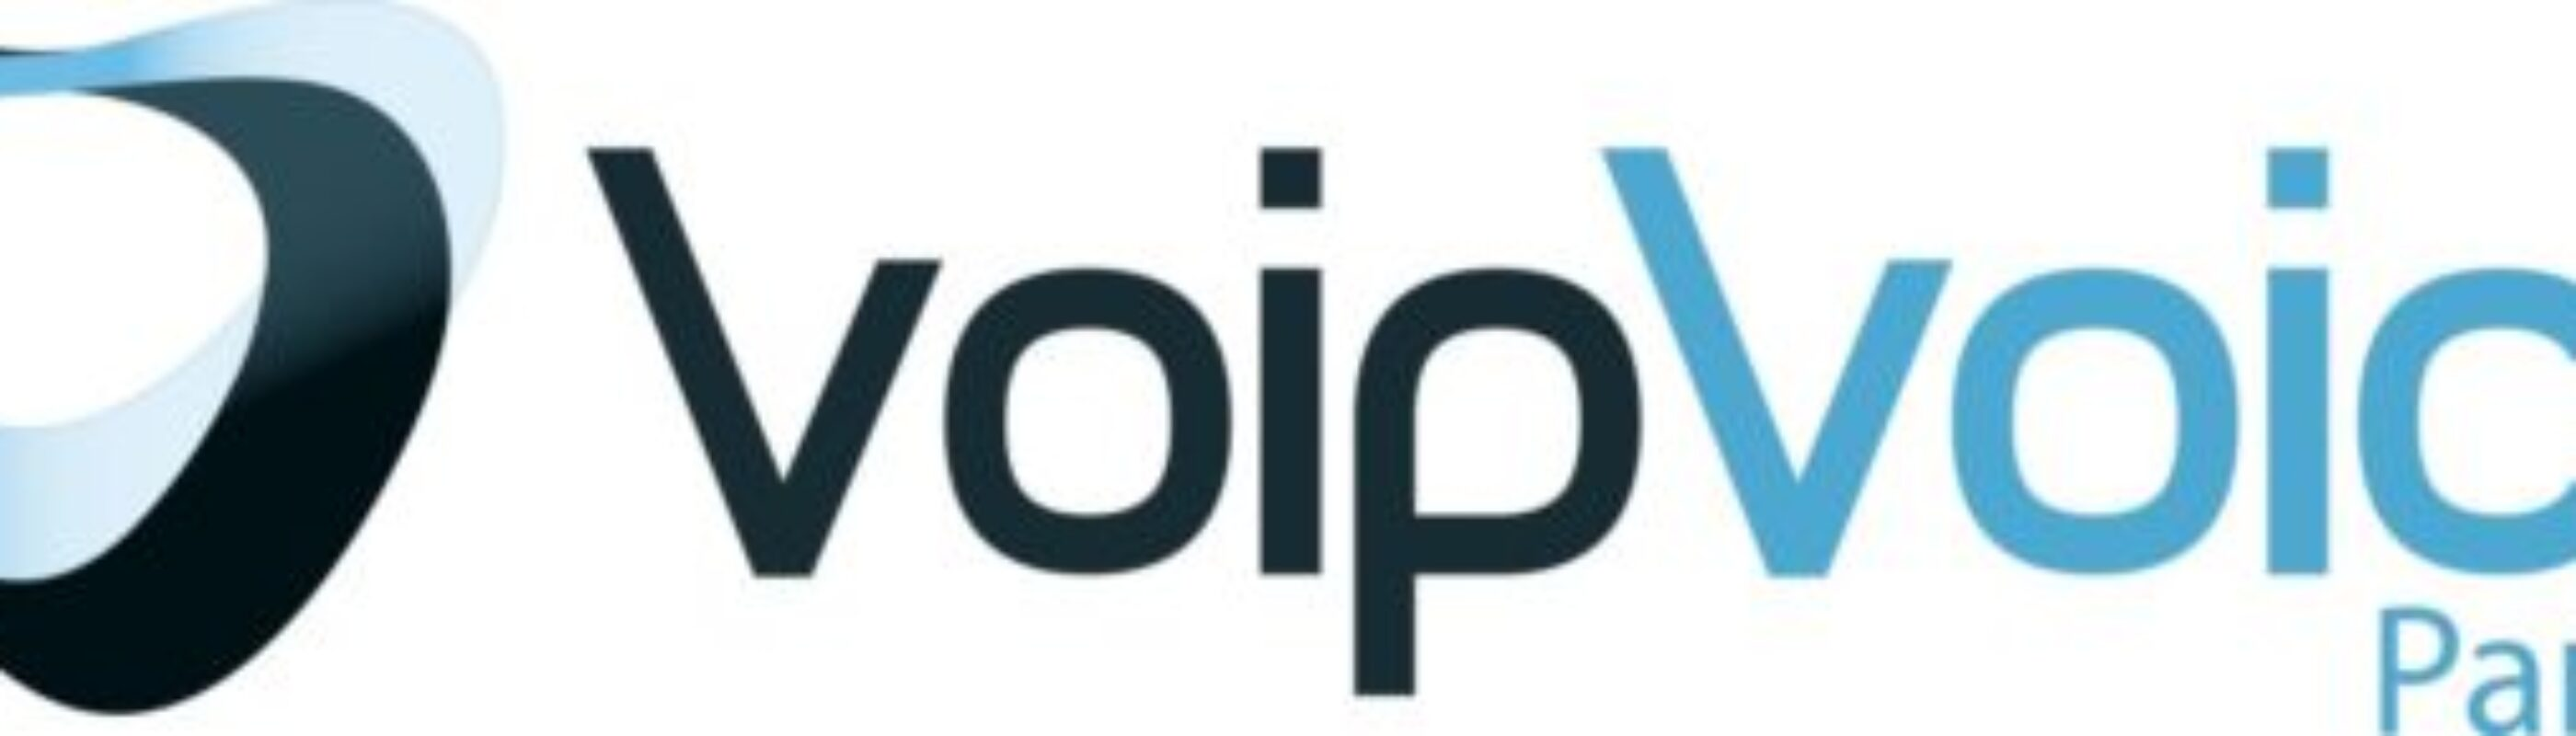 Voipvoice Partner